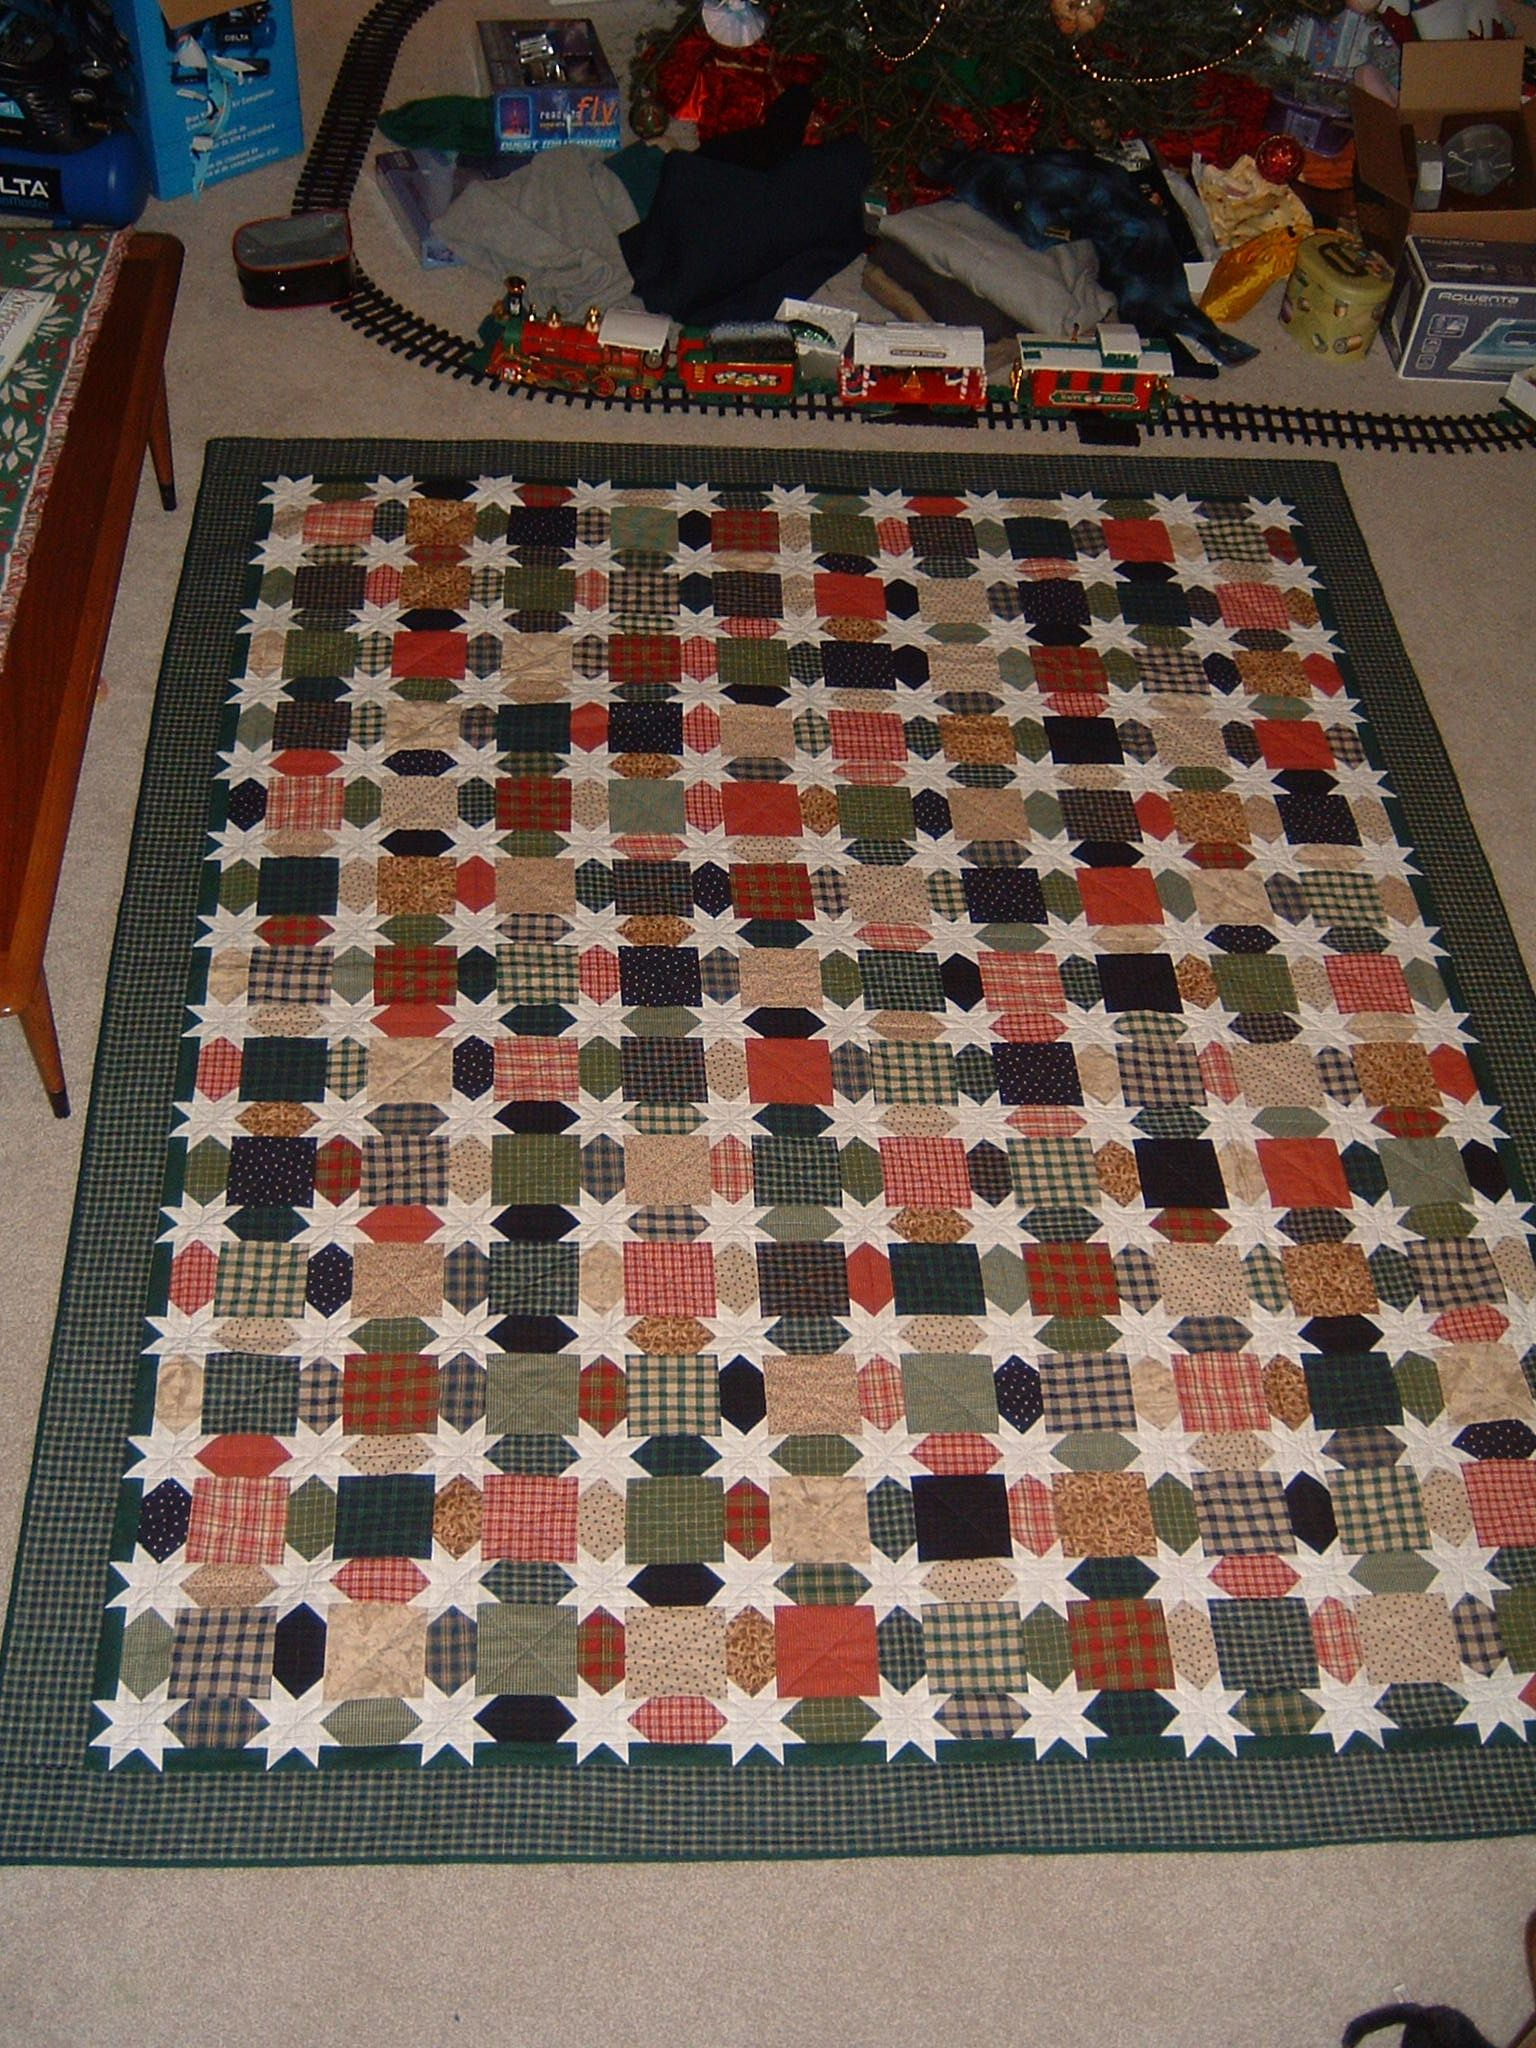 This is a very special quilt I made for my Father for Christmas made of homespun and flannel on the back.